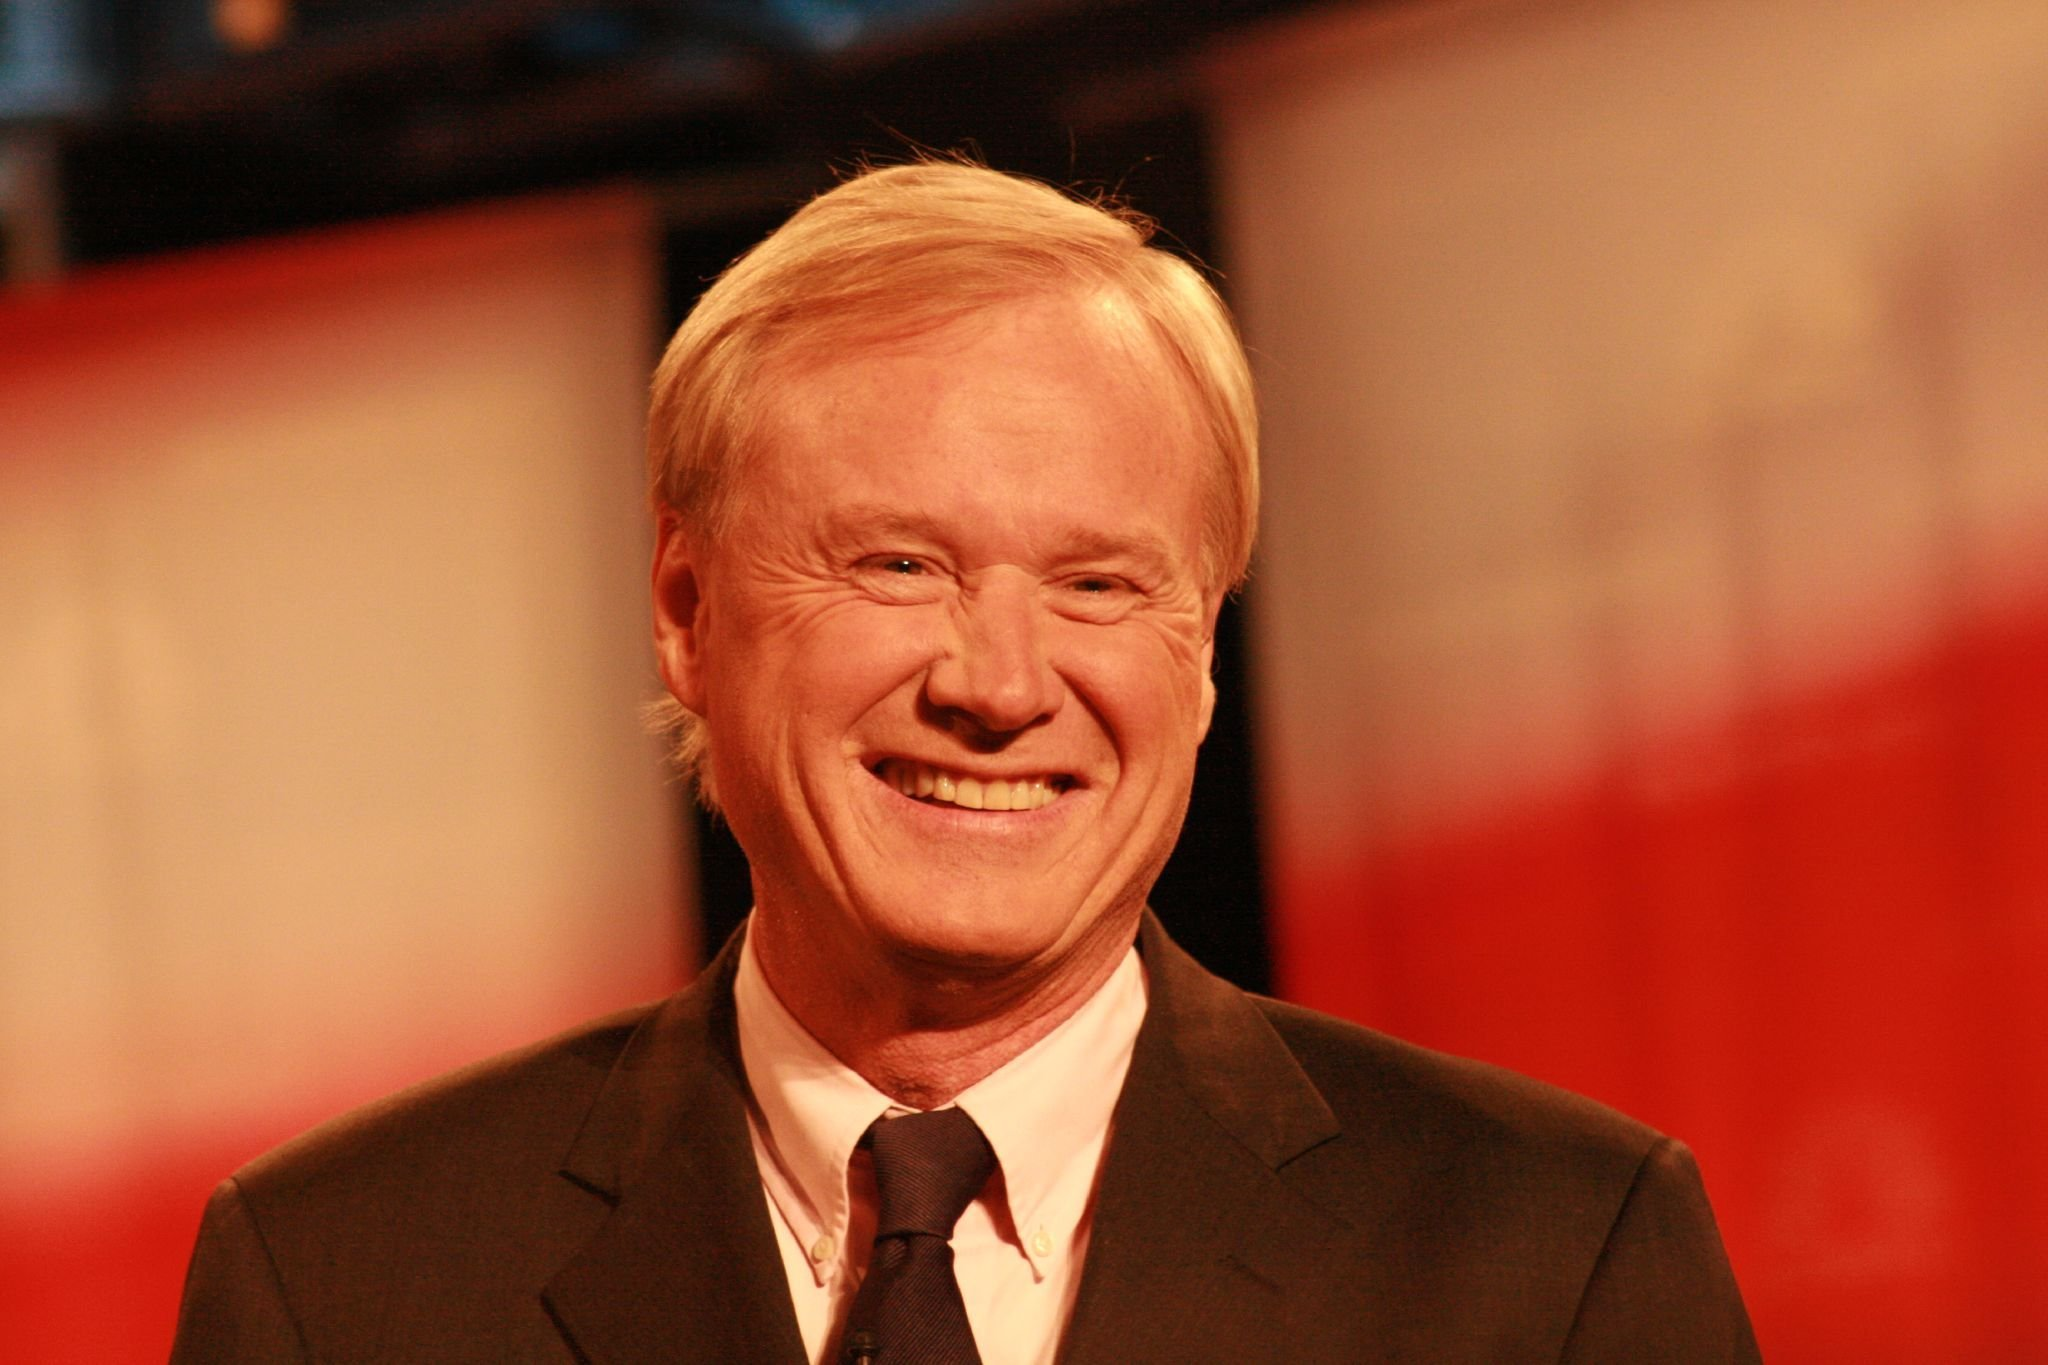 Chris Matthews at the Republican presidential debate in Dearborn, Michigan, on October 9, 2007 | Photo: chetlyzarko/Flickr